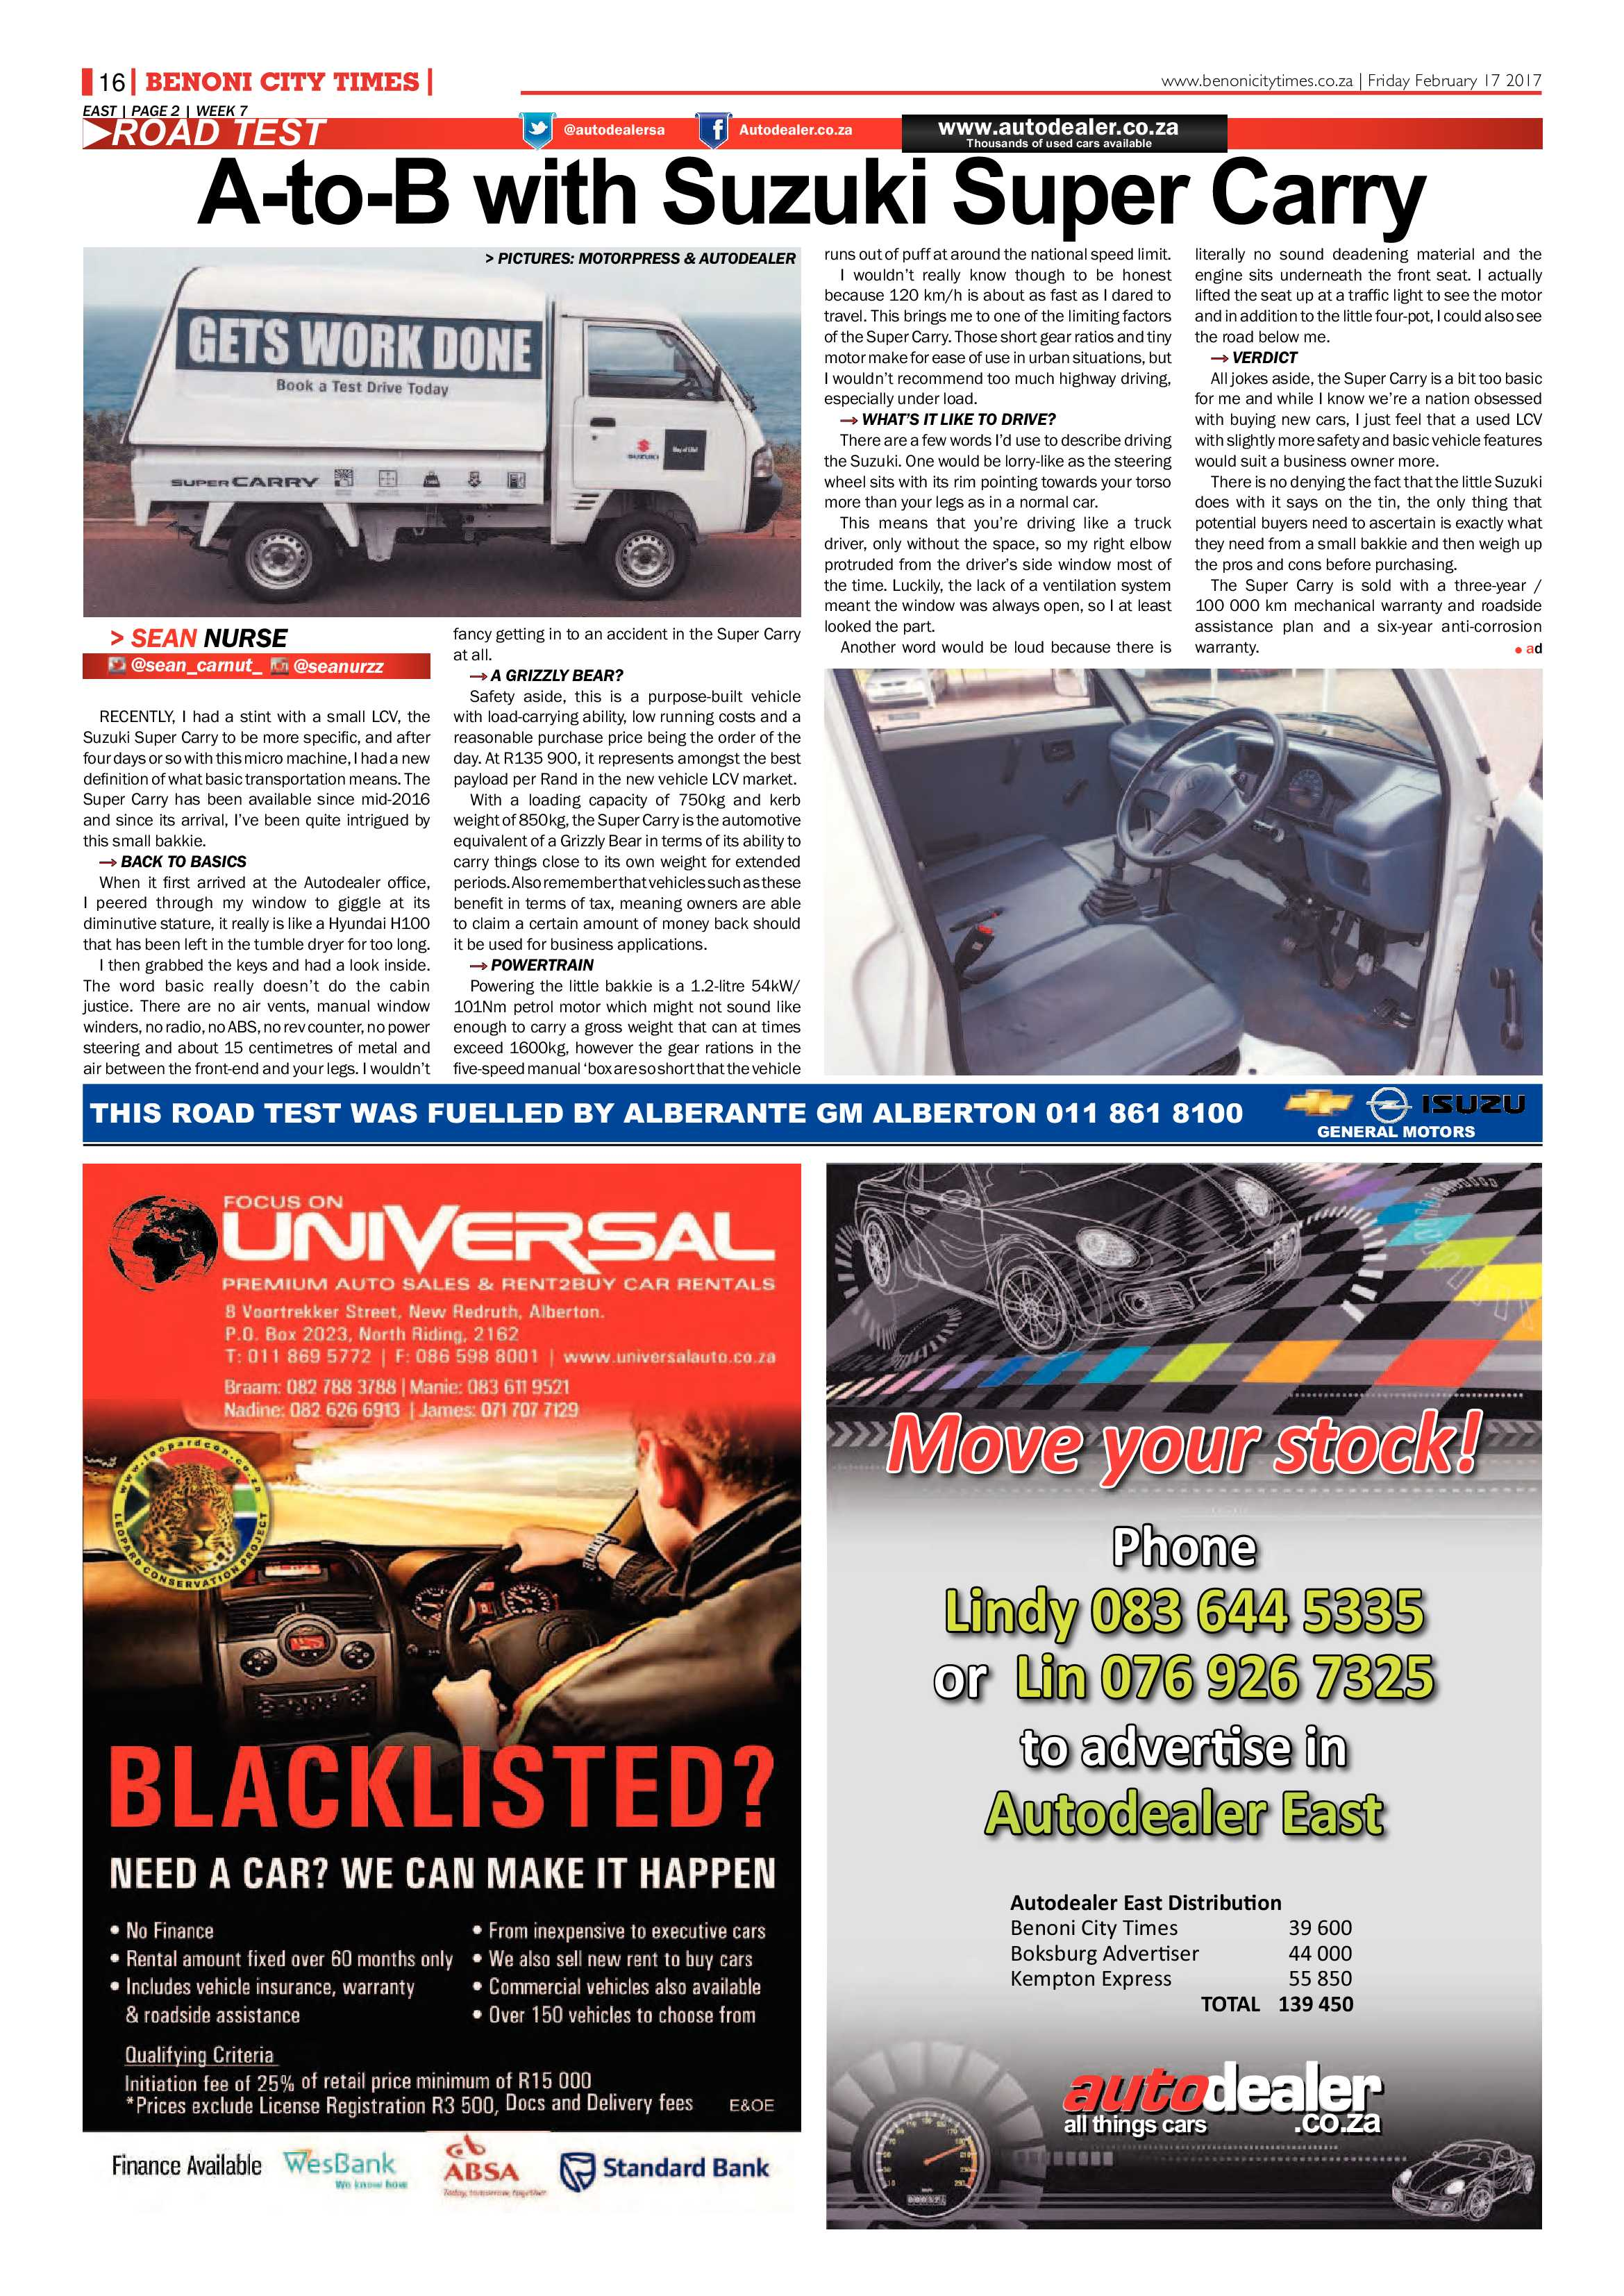 benoni-city-times-16-february-2017-epapers-page-16